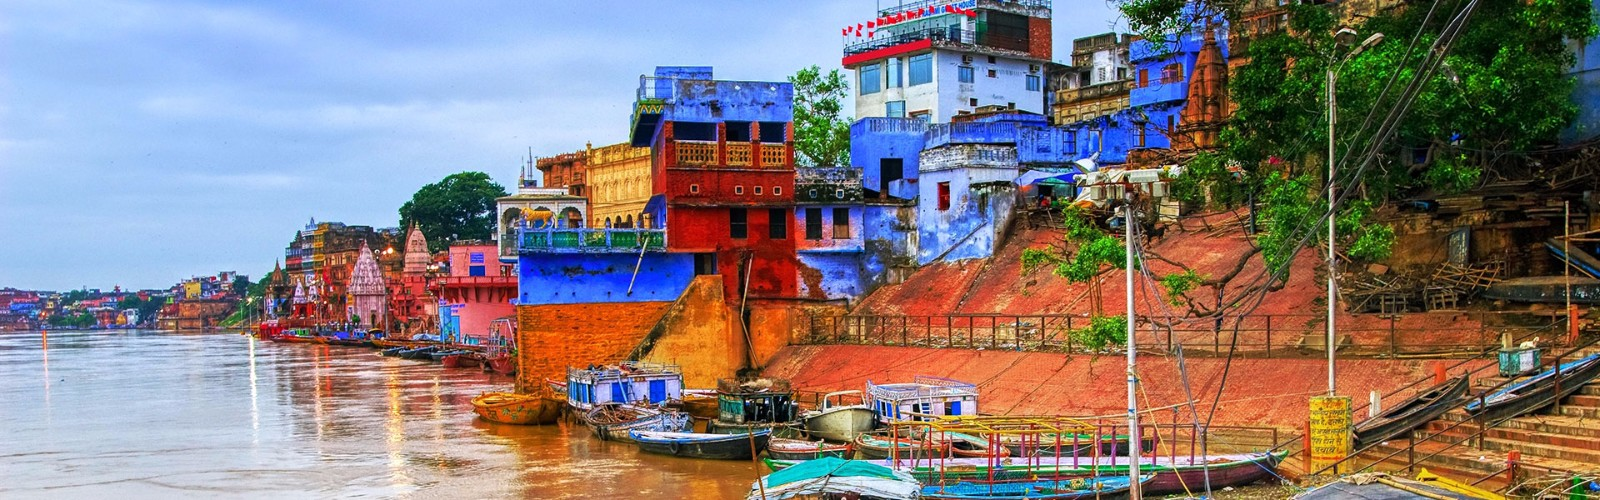 Ghats on River Ganges Holidays